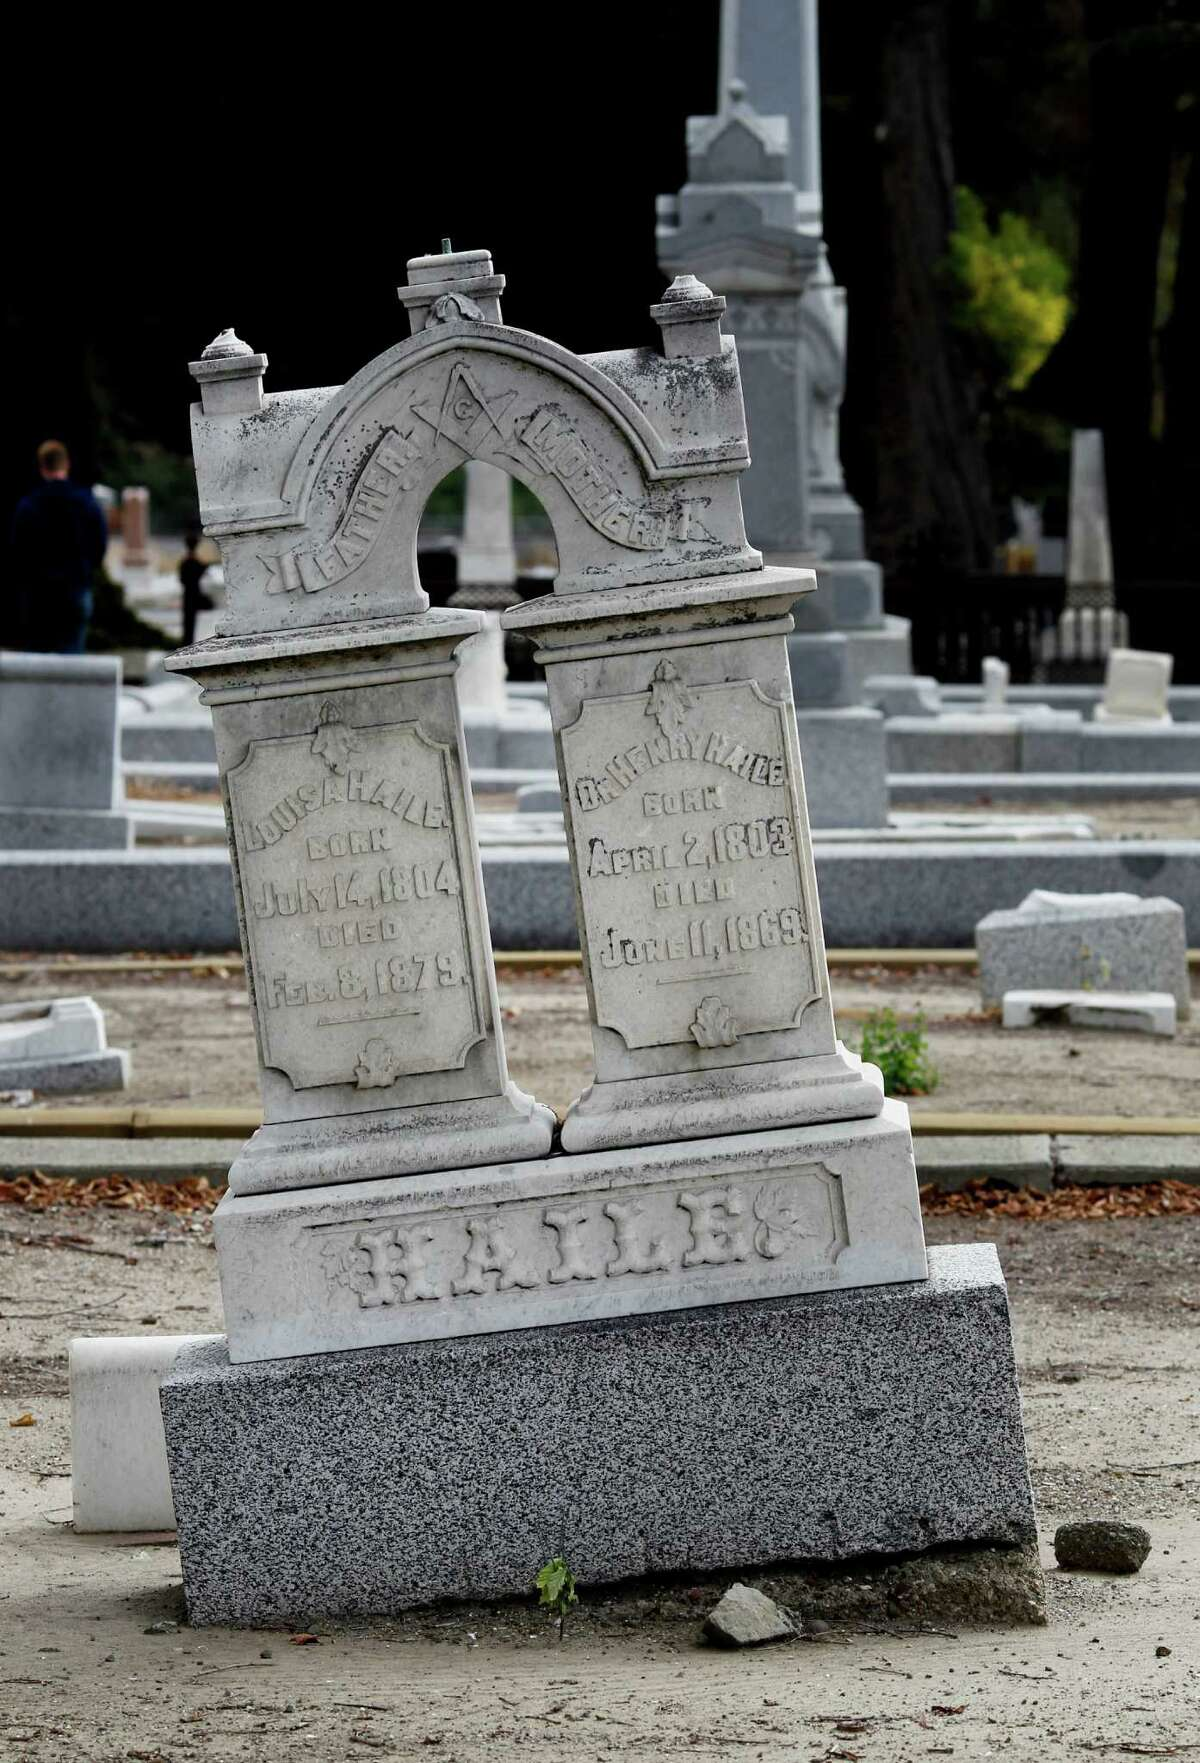 Local historians believe that decaying caskets underground at the San Lorenzo Pioneer Cemetery can shift monuments and grave markers. The cemetery has been closed for decades, but a group is trying to restore it. Its members lead paranormal tours to raise funds and talk about strange deaths at the cemetery and nearby McConaghy House.